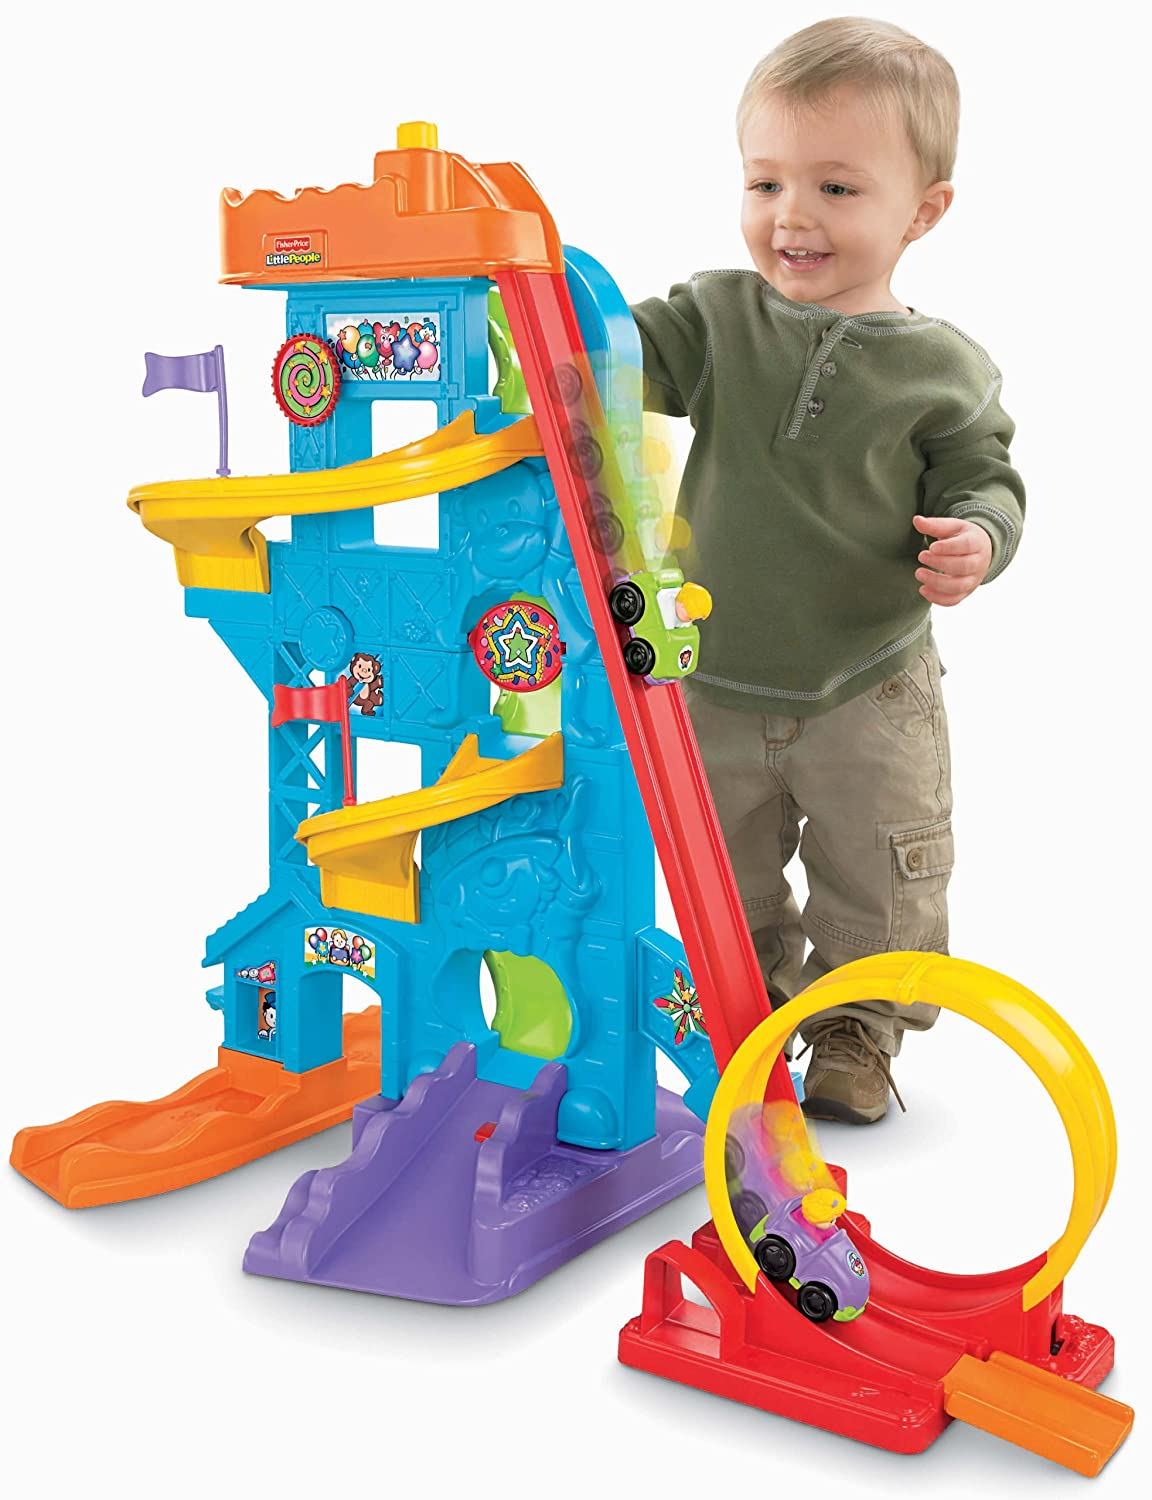 Toys For Toddler Boys 2 : Best gifts for year old boys in itsy bitsy fun